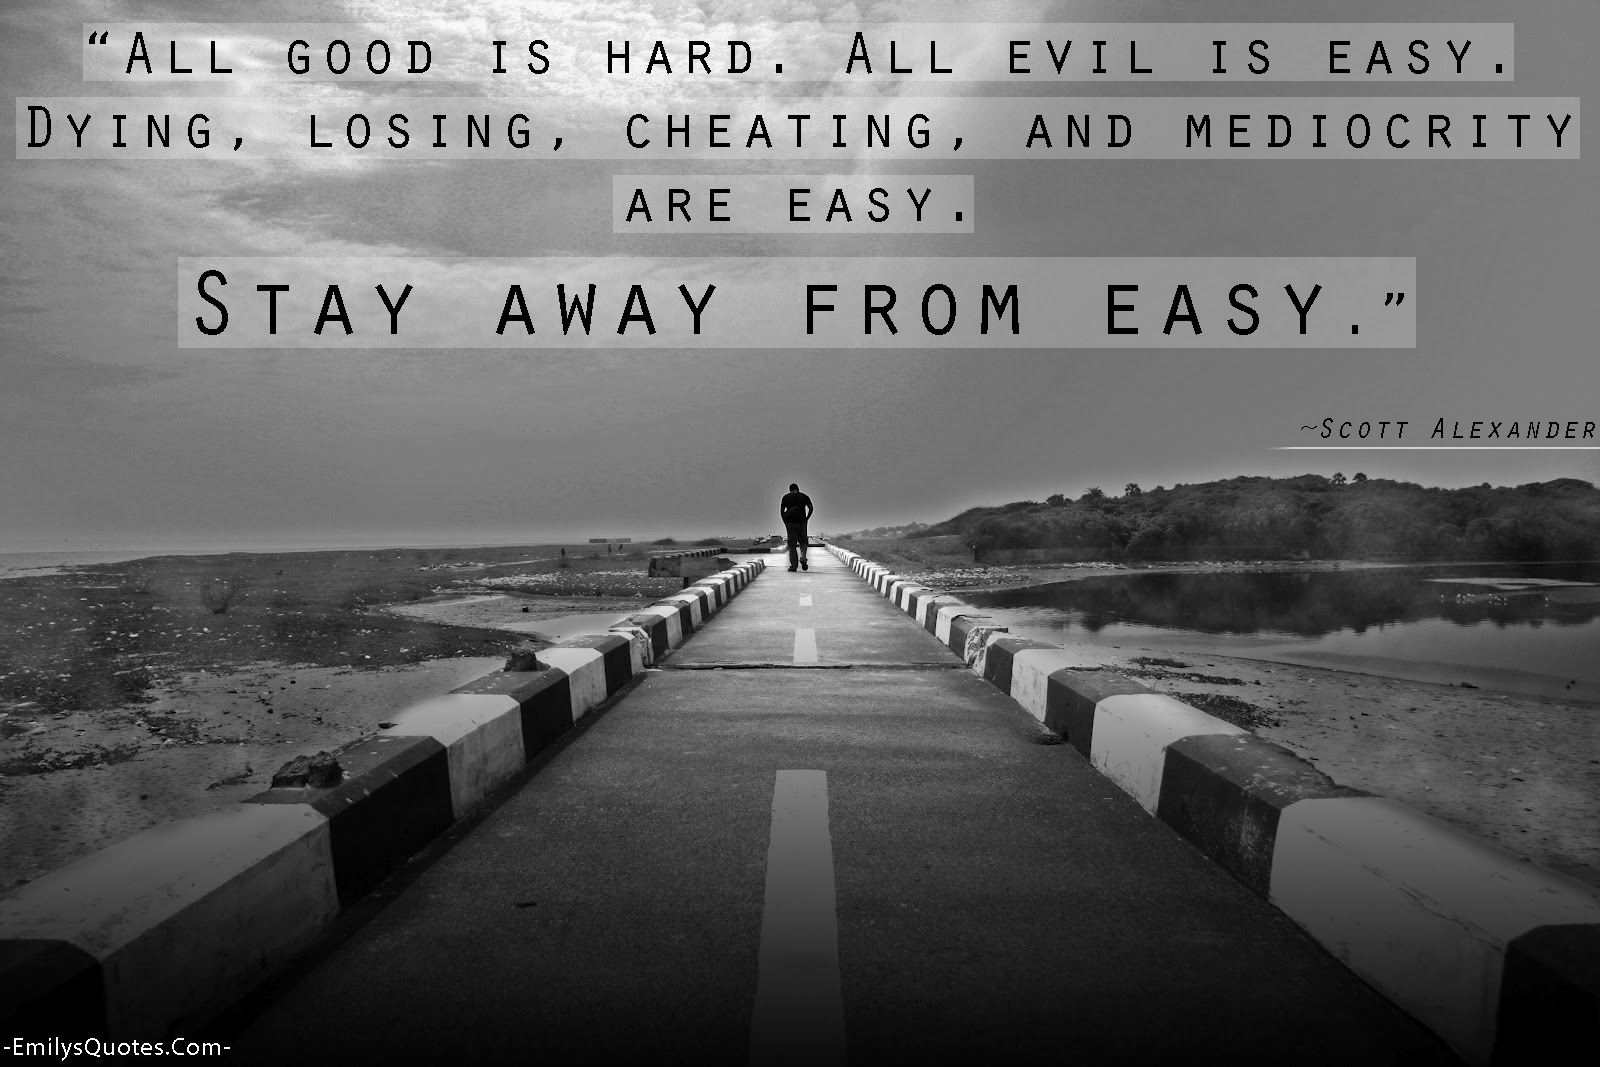 Quotes About Dying All Good Is Hardall Evil Is Easydying Losing Cheating And